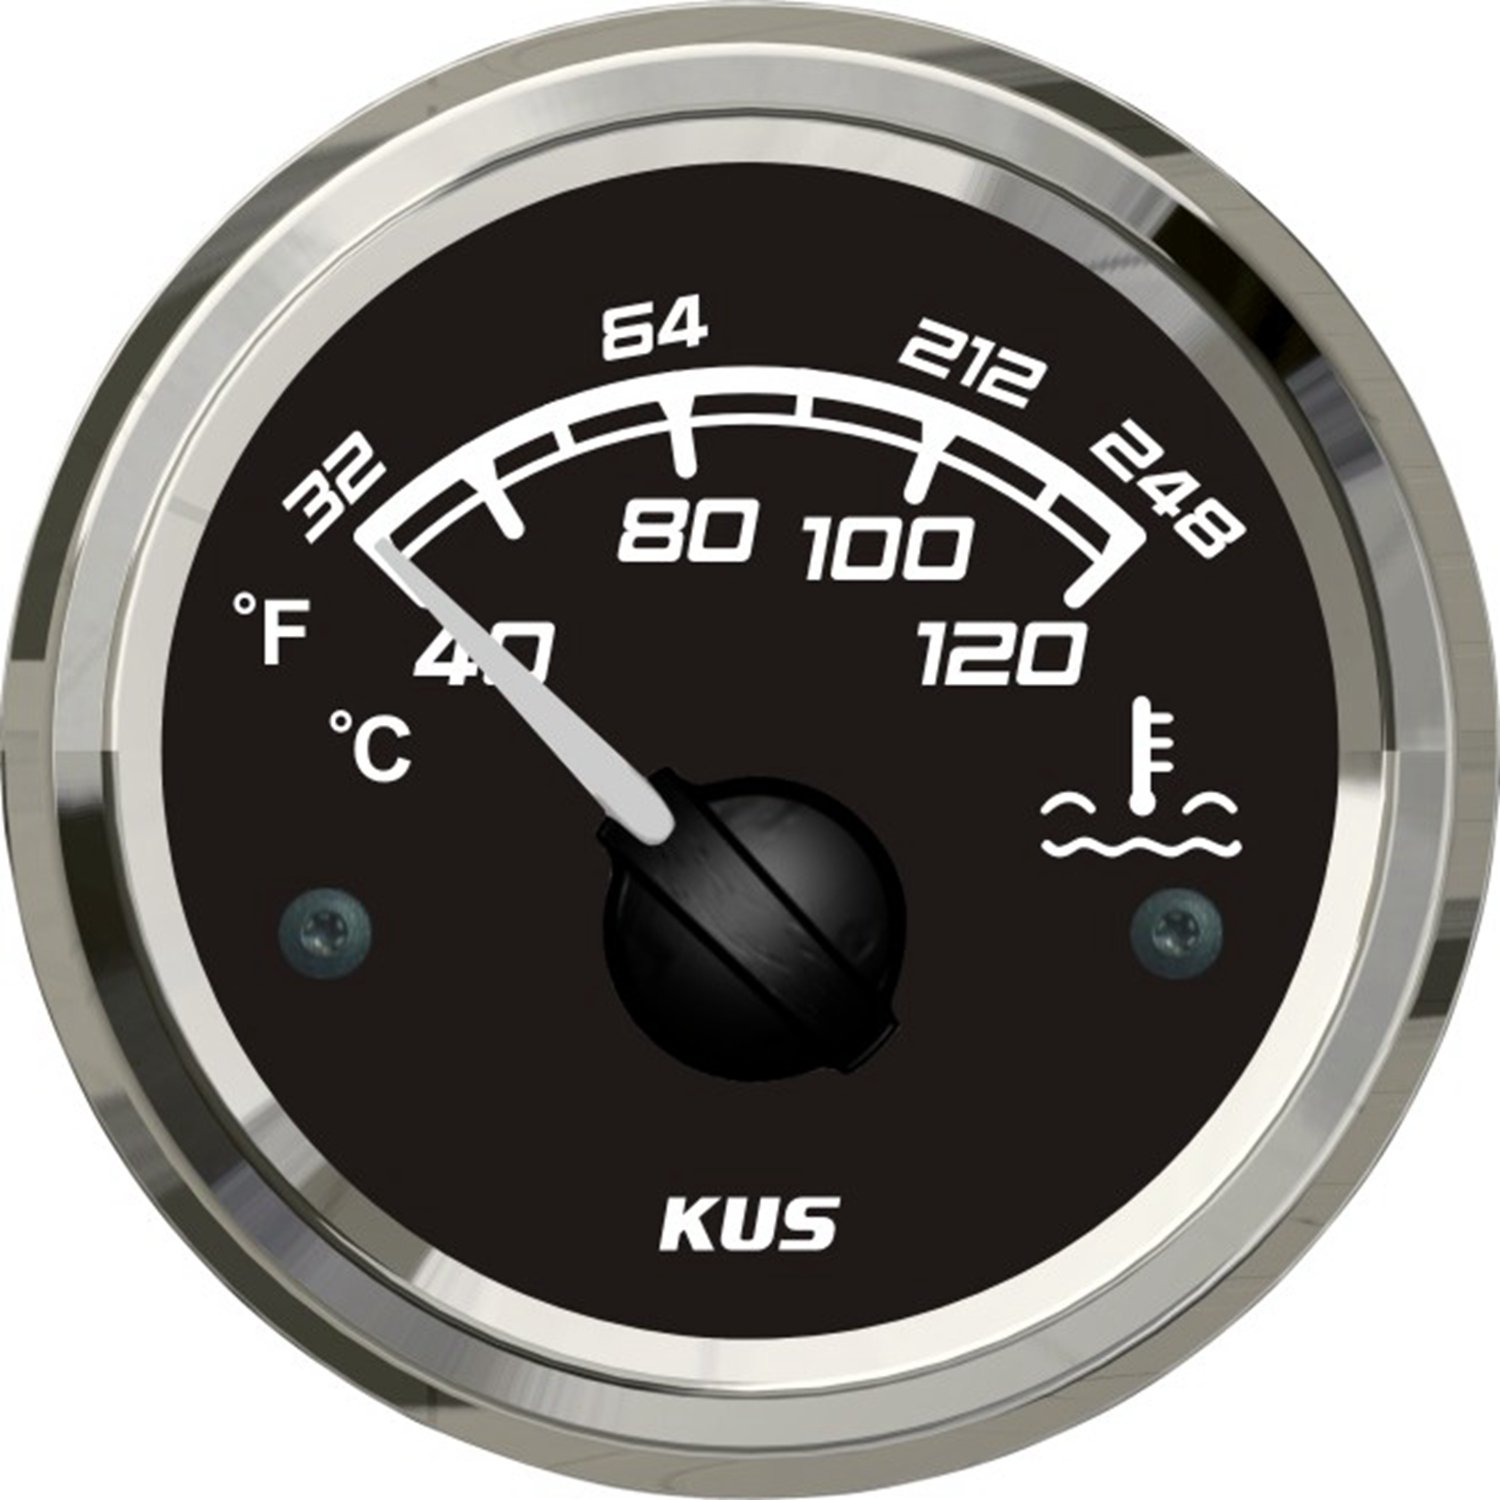 SEAWELL Kus Marine Water Temperature Gauge Boat Temp Meter 52mm 12/24V 40~120℃ Black by SEAWELL